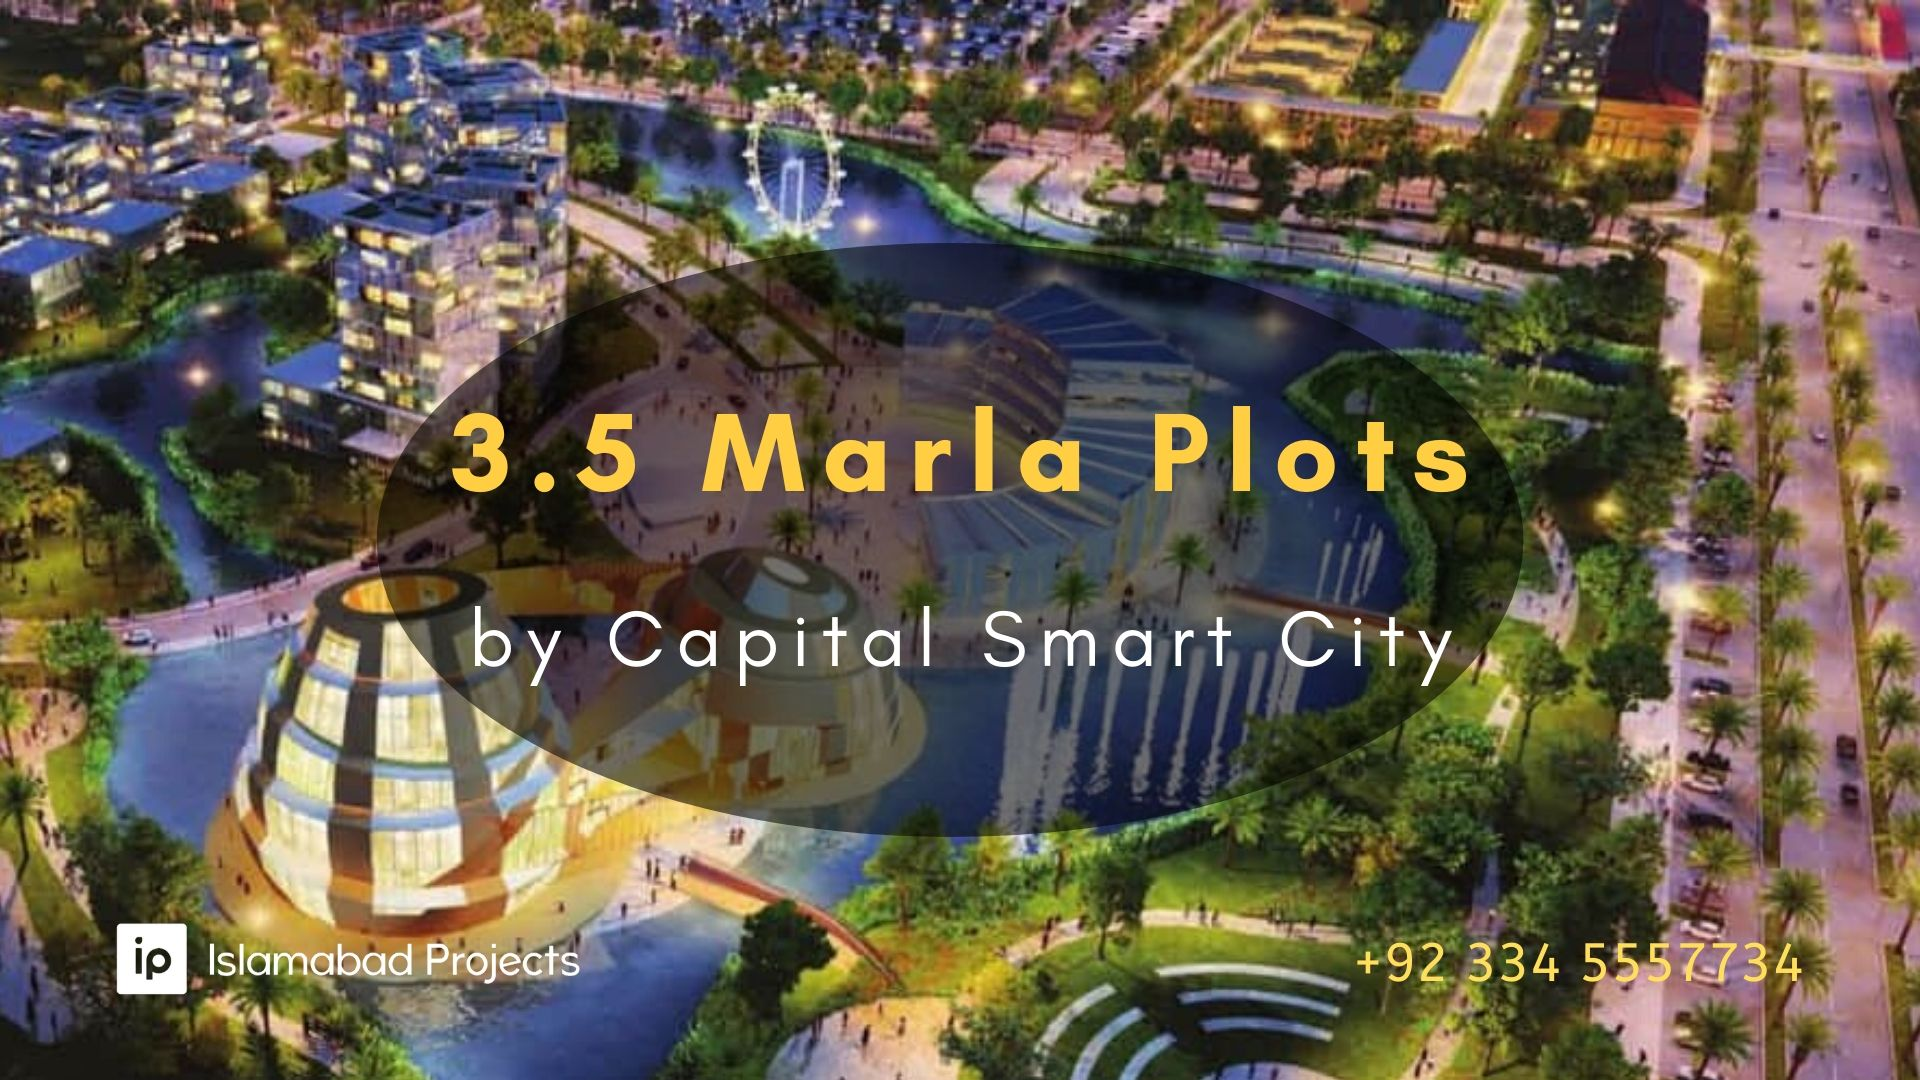 Capital Smart City Launched 3.5 Marla Plots – Limited Inventory